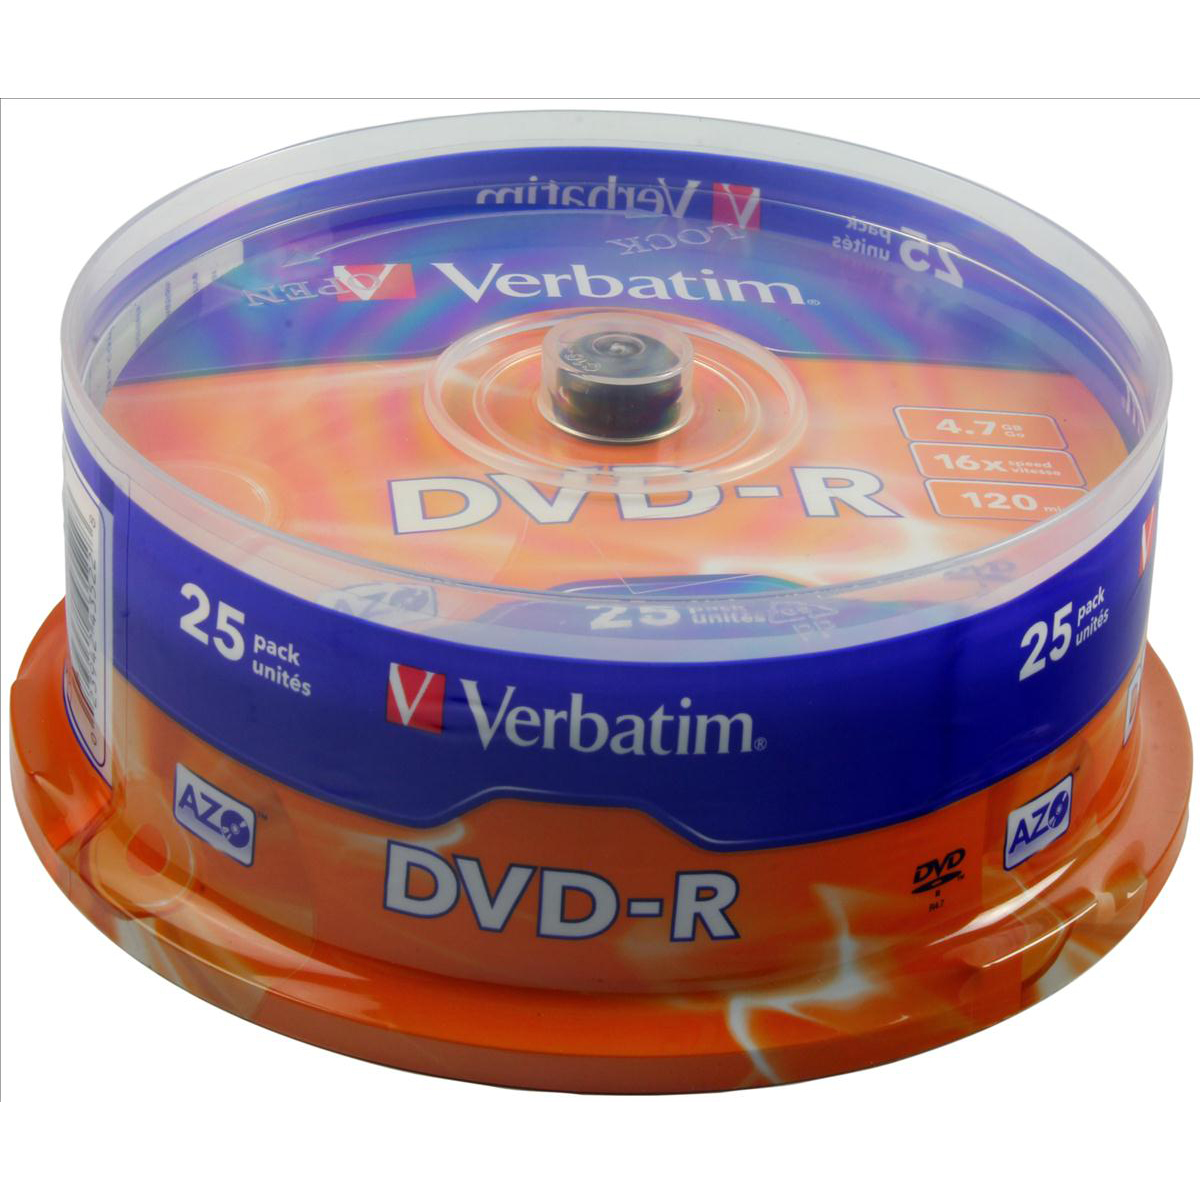 Image for Verbatim DVD-R Spindle Ref 43522-1 [Pack 25]